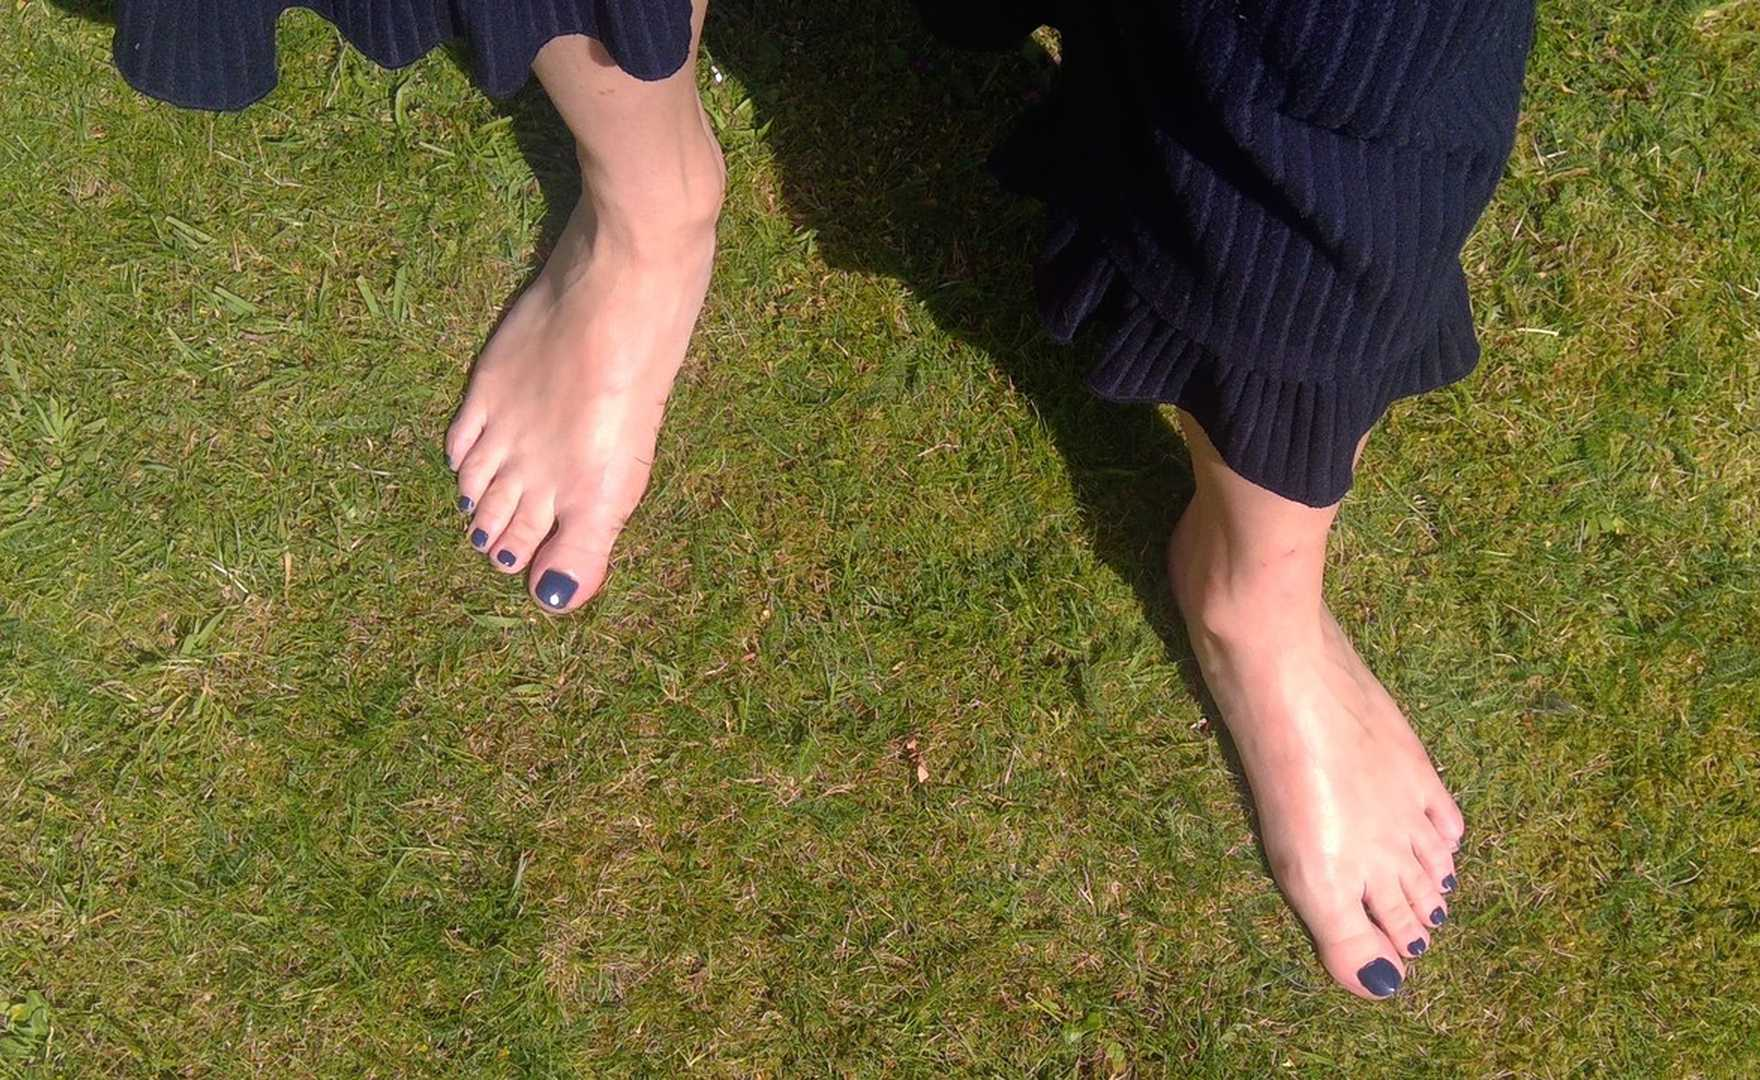 Kick off your shoes and walk barefoot in the grass